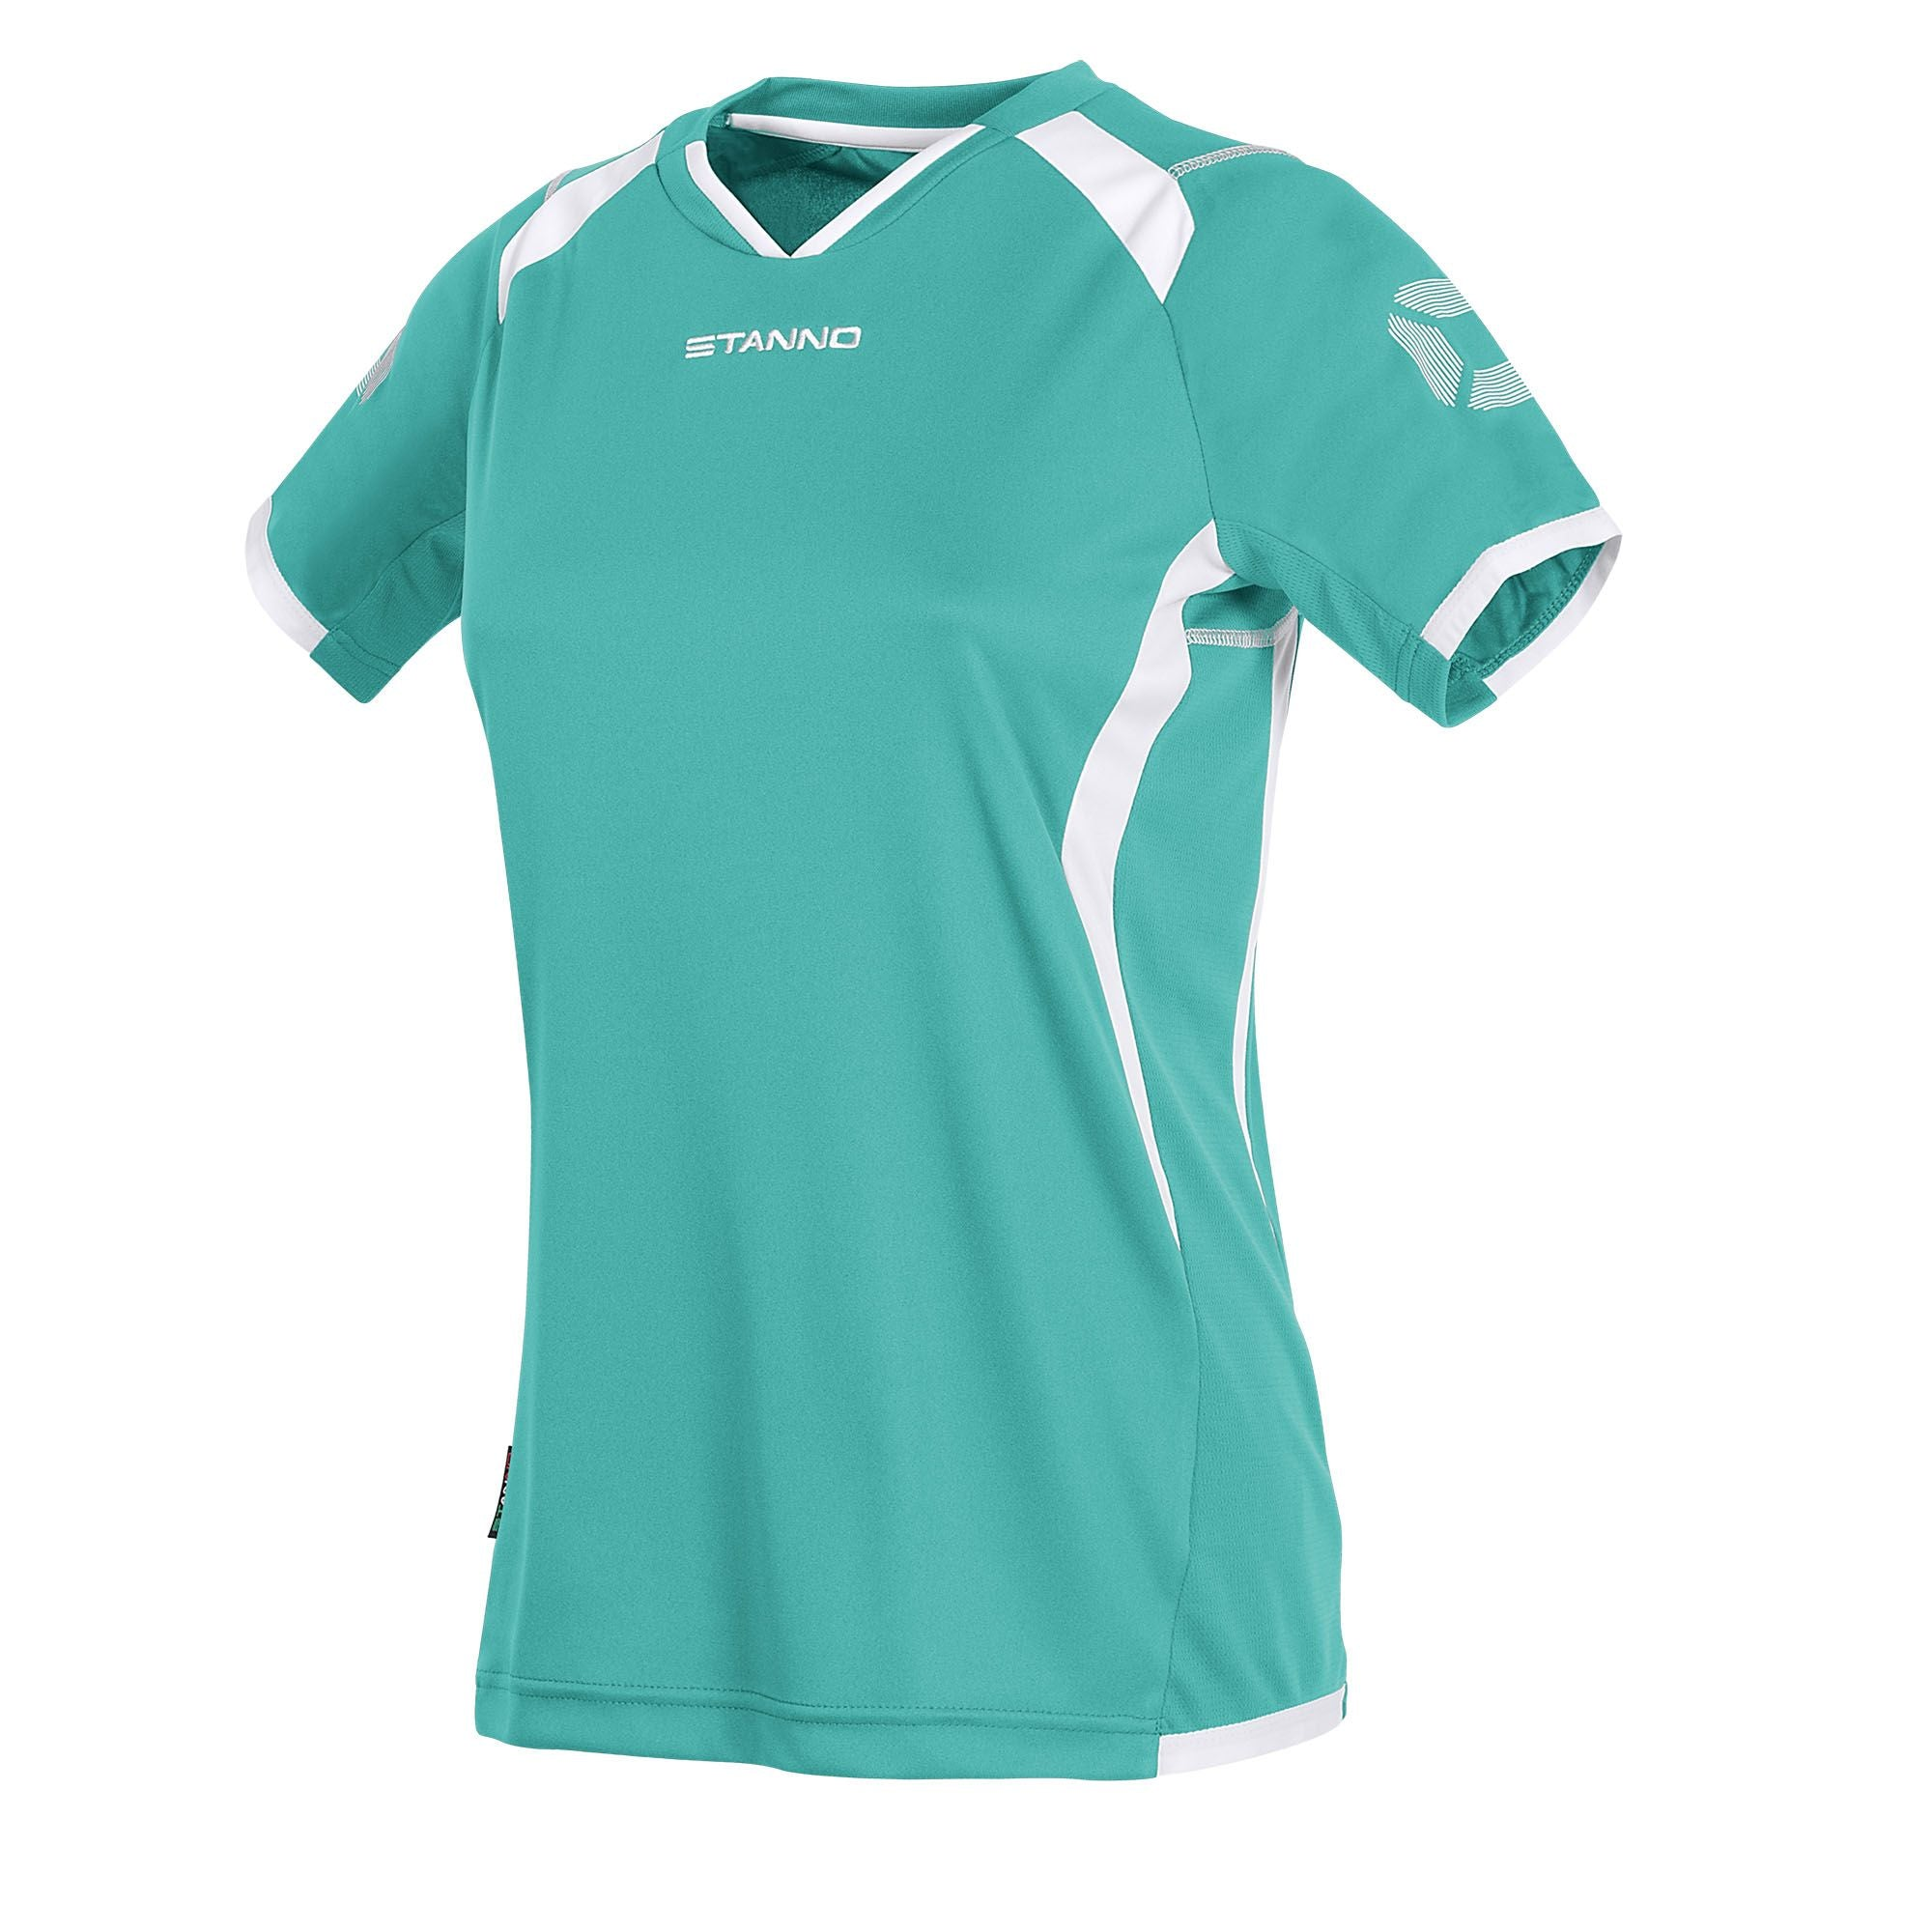 Stanno Olympico Shirt Ladies SS - Tiffany/White